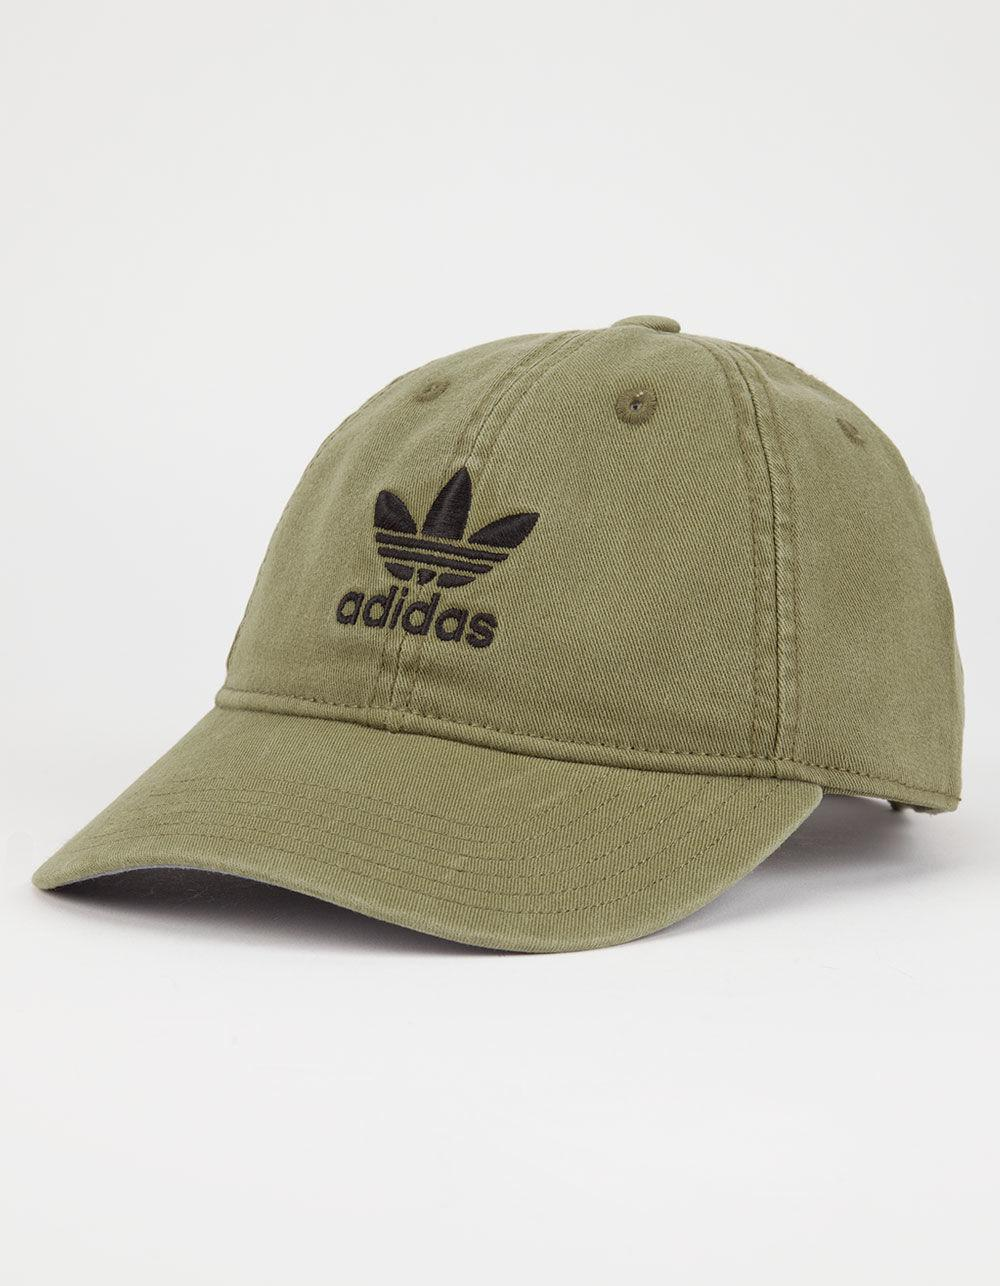 on sale 5266c 7e815 Adidas - Green Originals Relaxed Womens Dad Hat - Lyst. View fullscreen